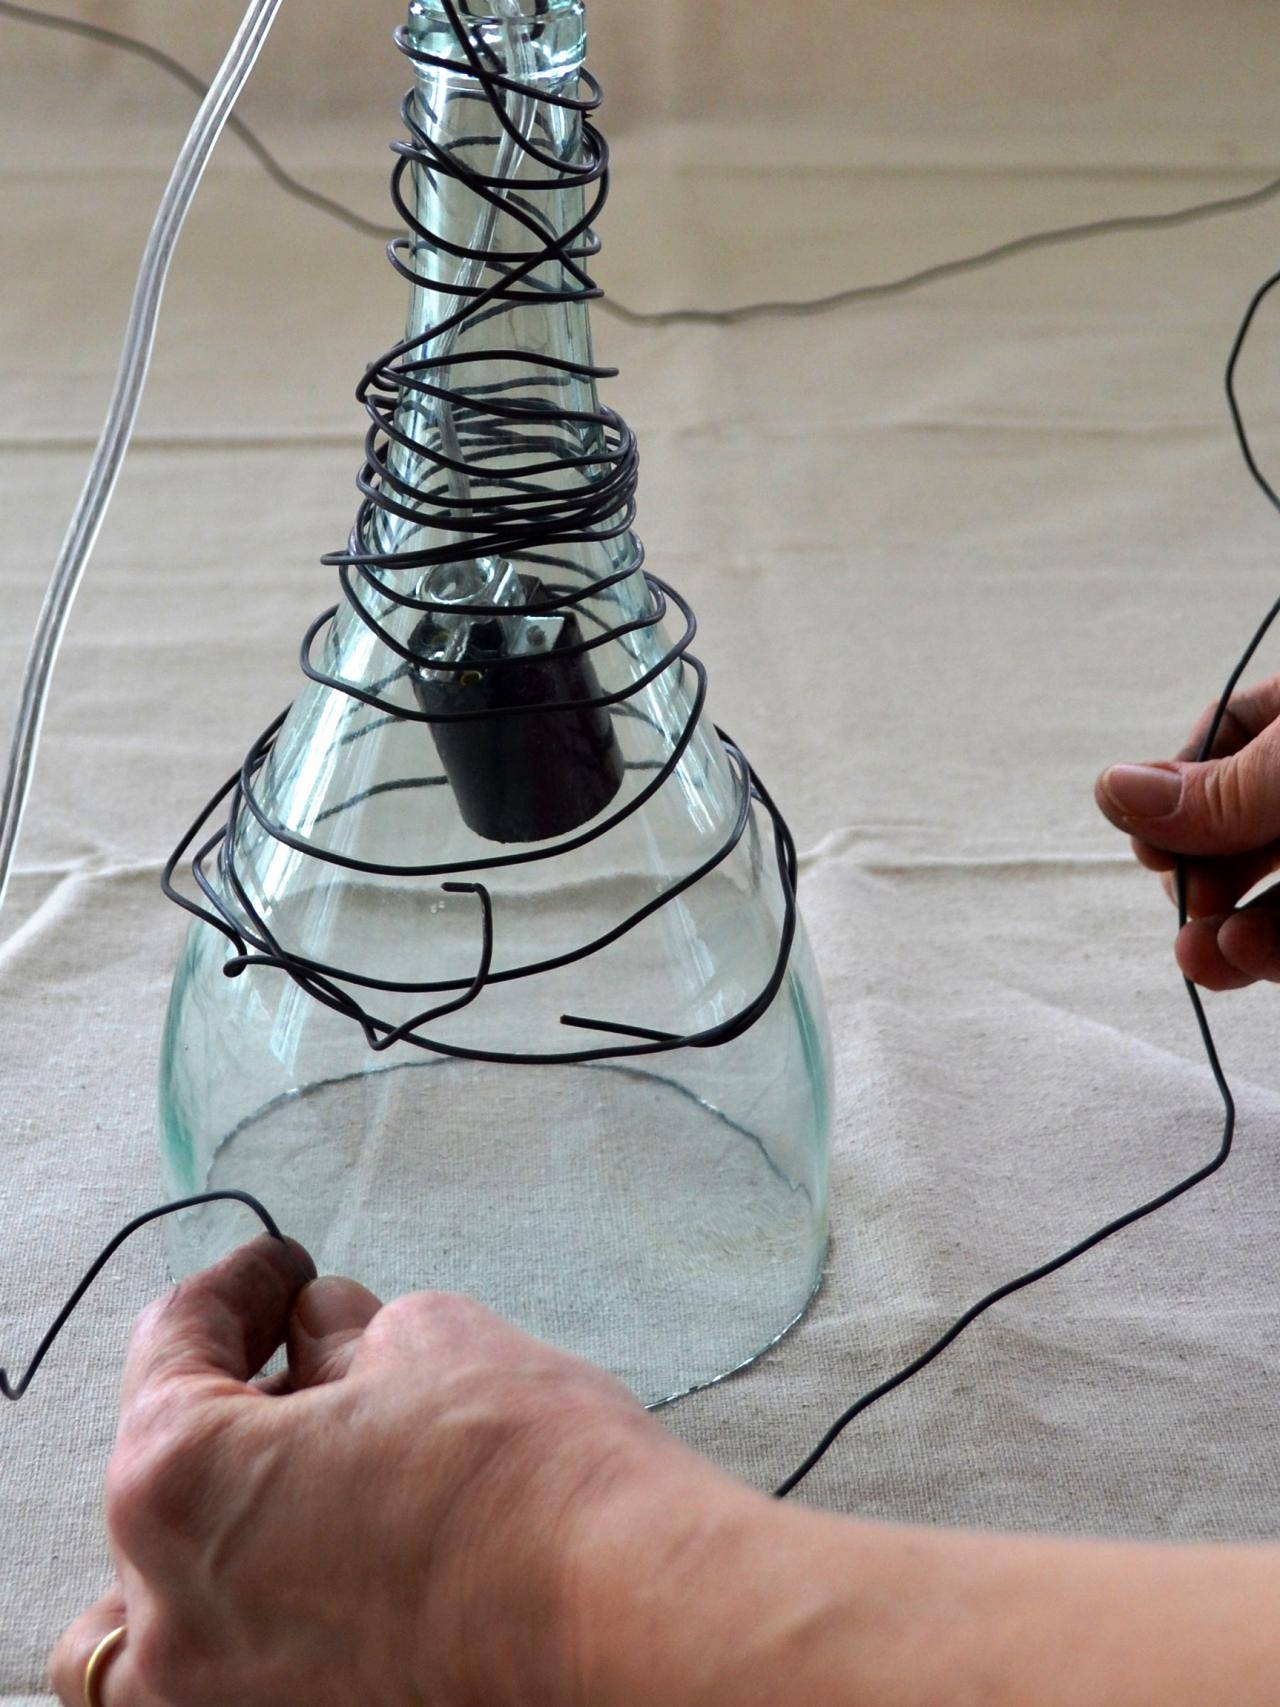 Upcycle Wine Bottle Into Pendant Light Fixtures | How-Tos | Diy inside Wine Bottle Pendants (Image 13 of 15)